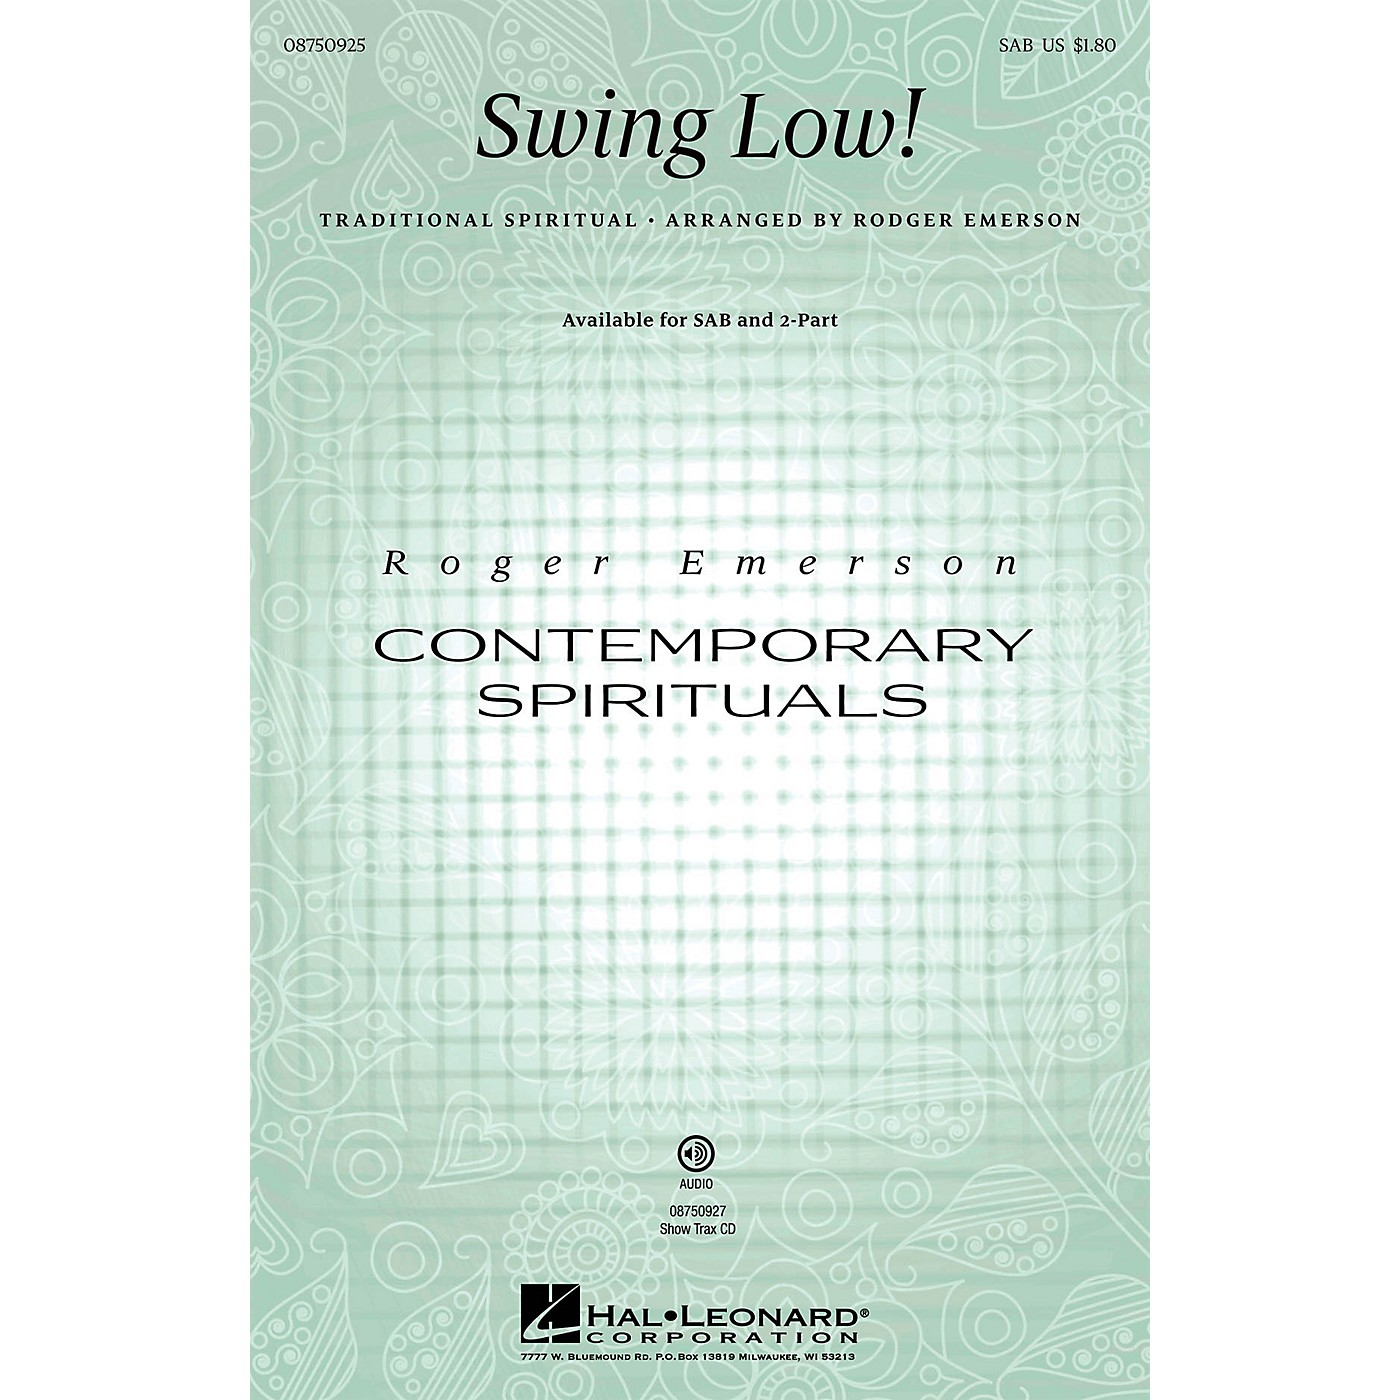 Hal Leonard Swing Low! ShowTrax CD Arranged by Roger Emerson thumbnail